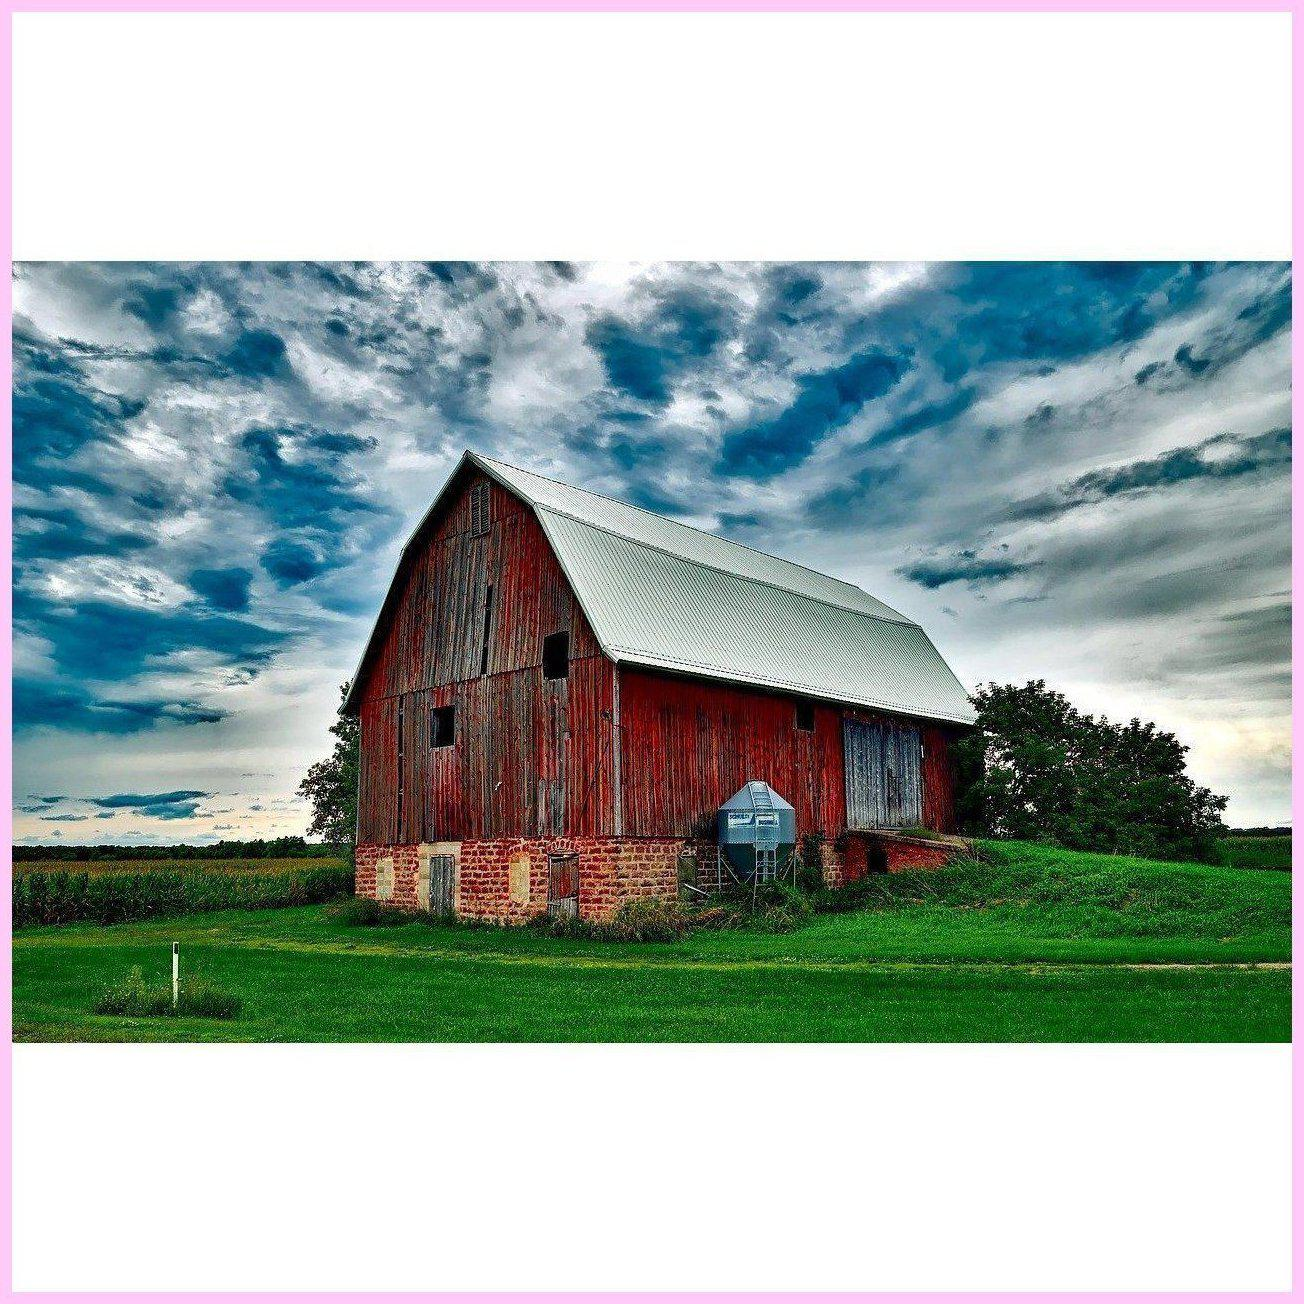 Gloomy Day at the Farm-Diamond Painting Kit-25x40cm (10x16 in)-Square-Heartful Diamonds